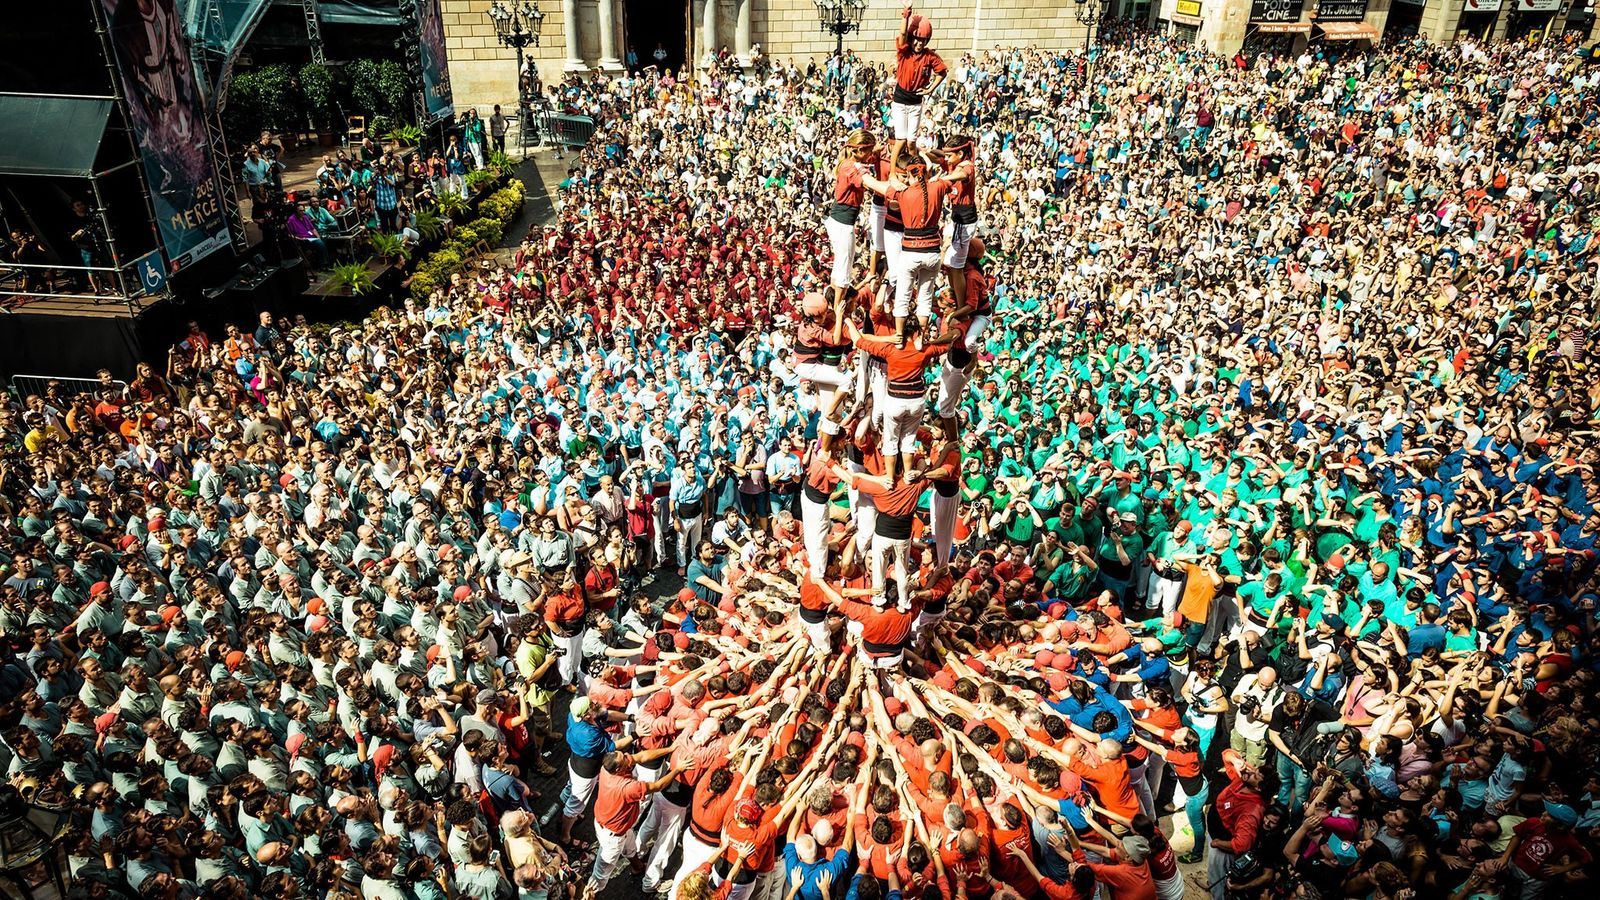 The castellers of Barcelona build a human tower in front of Barcelona's town hall during the ...